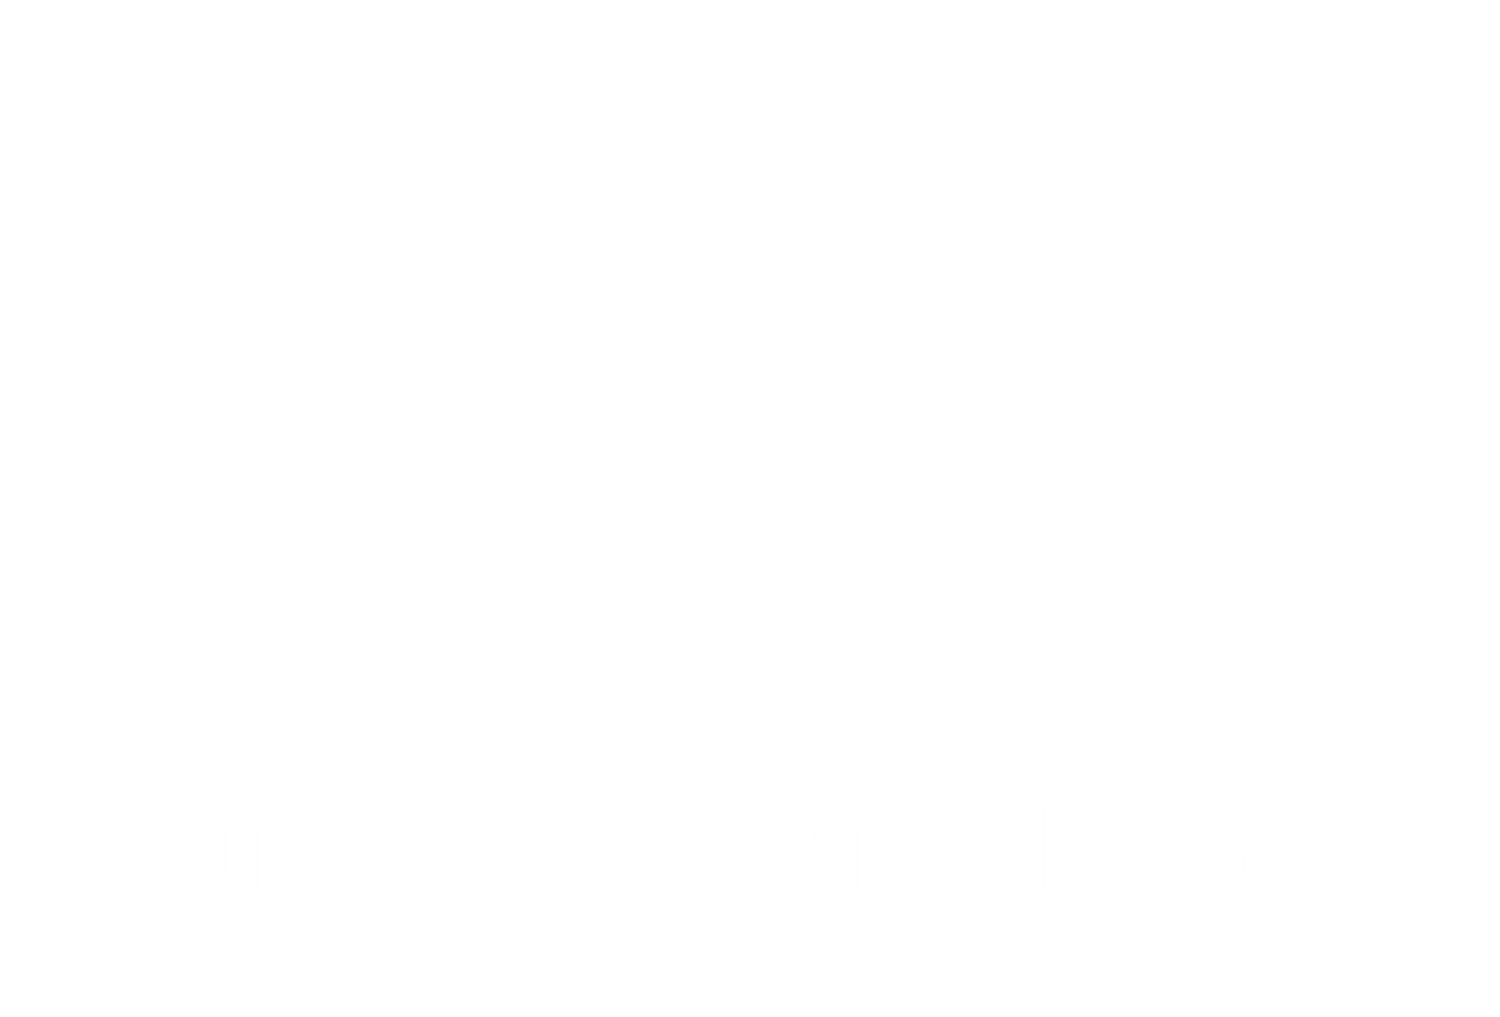 Durango Alpine Realty | Featuring Colorado Ranches and Land for Sale